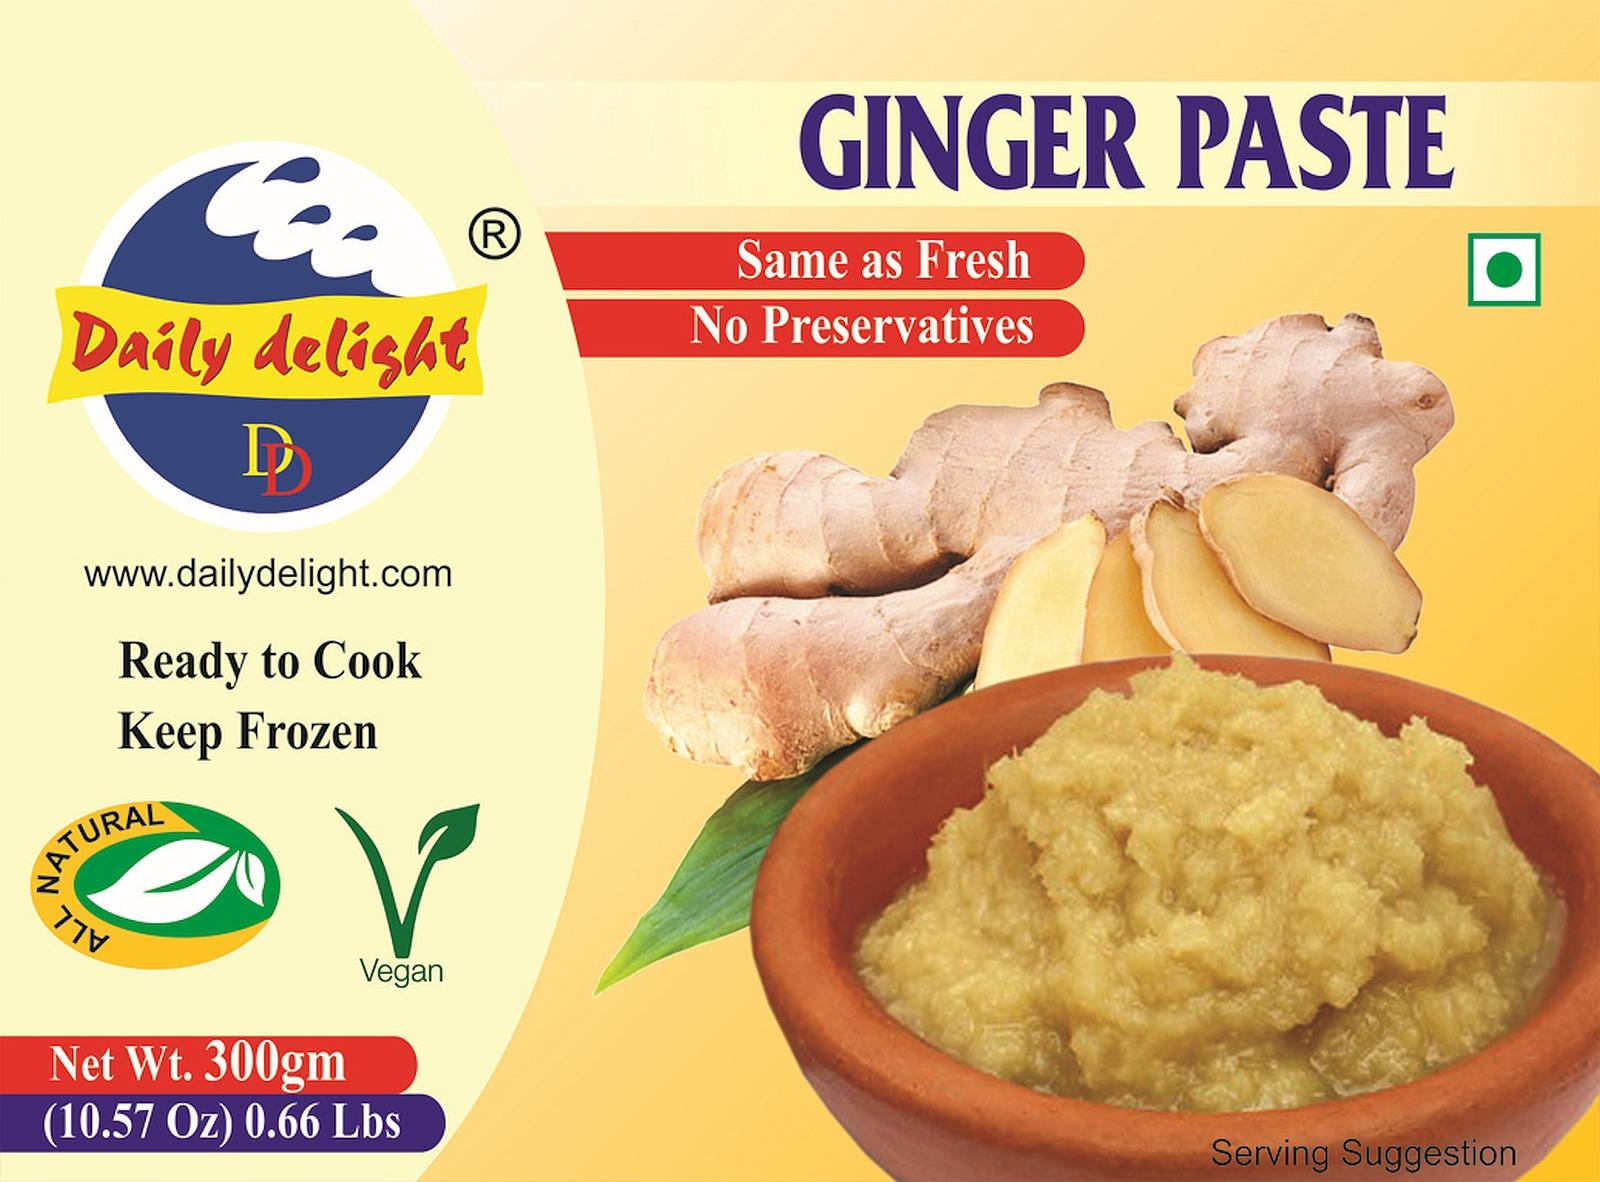 Daily Delight Ginger Paste